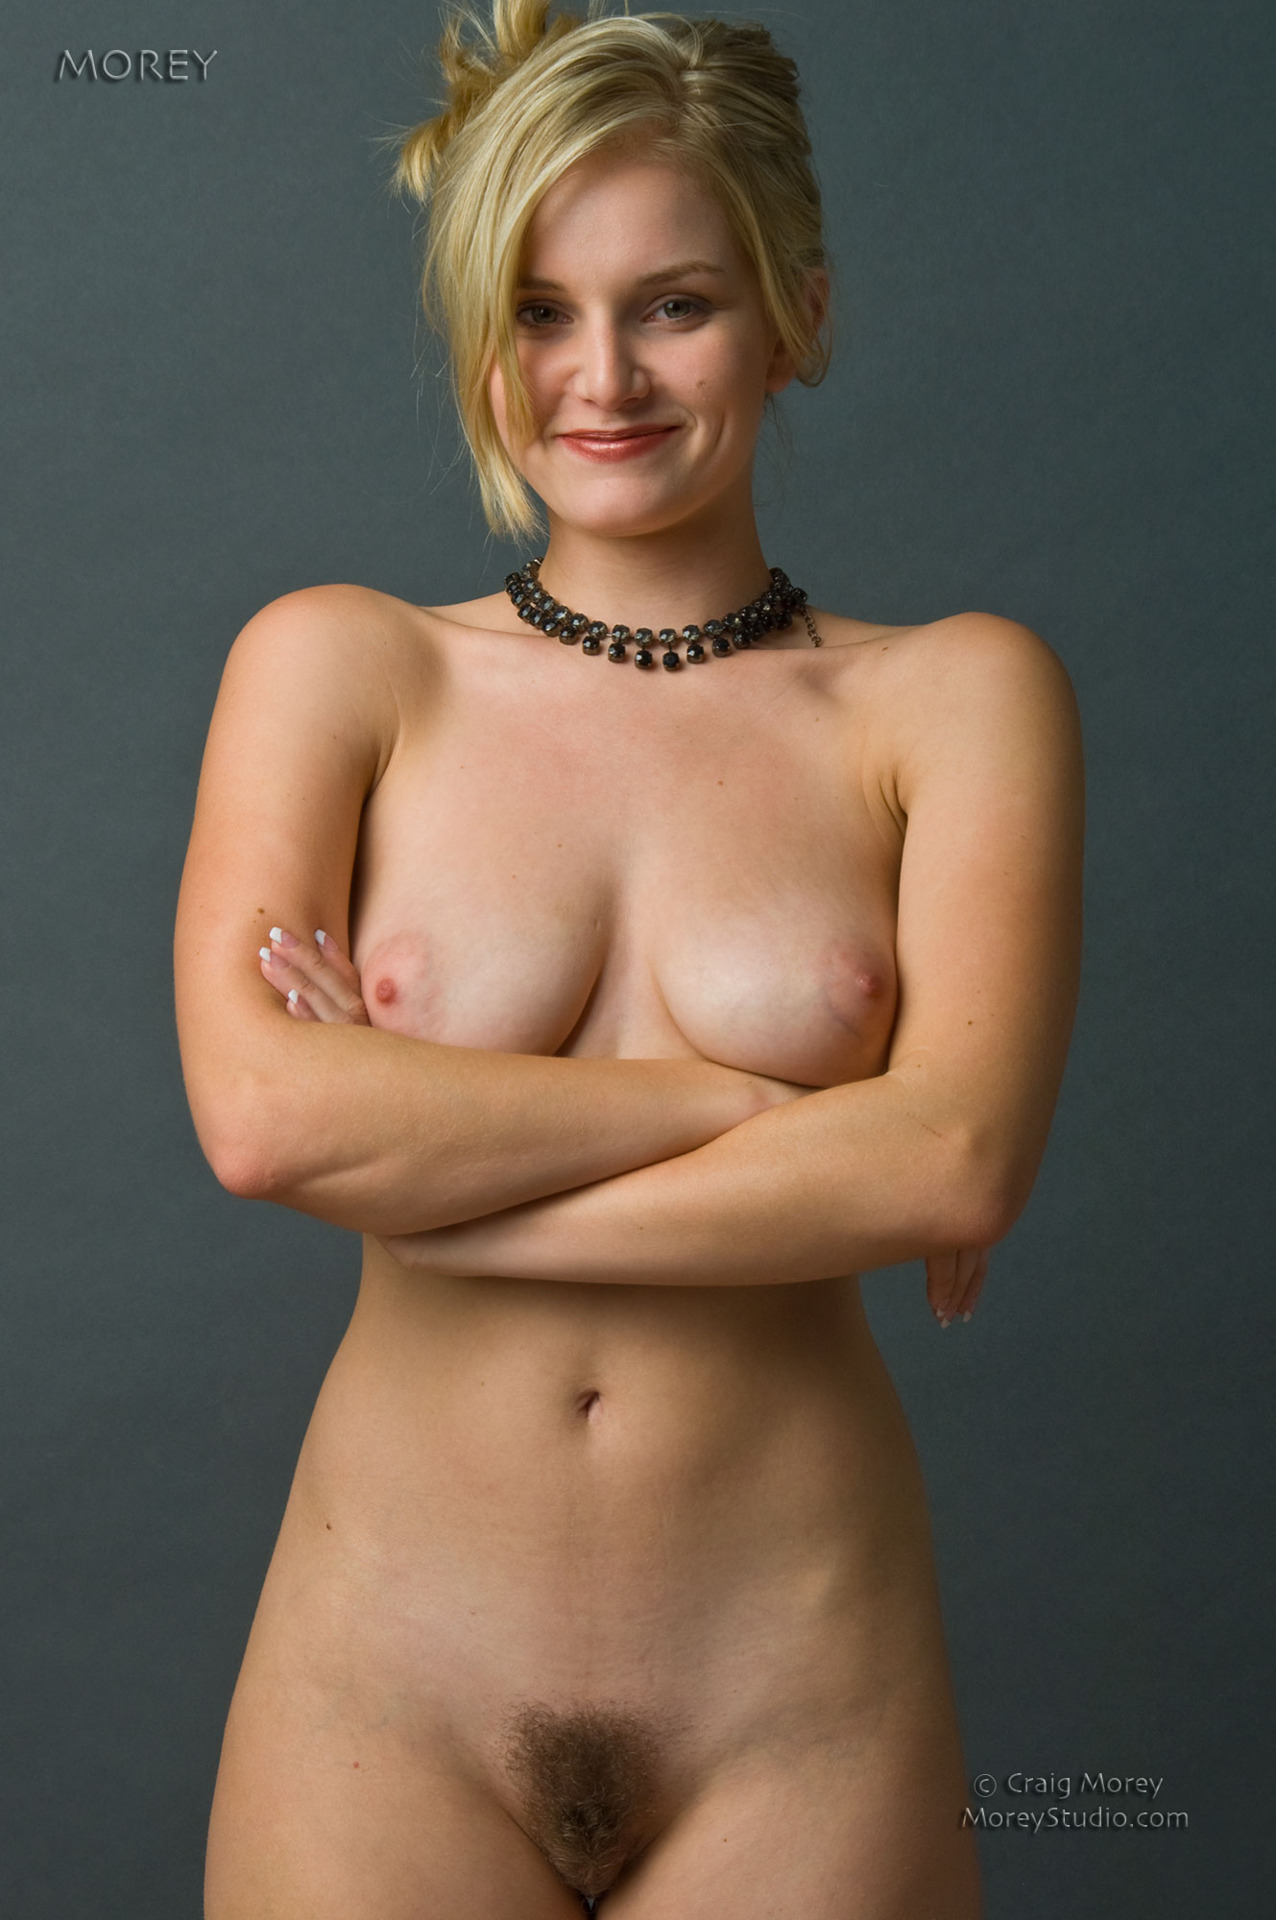 Nudist girl tumblr